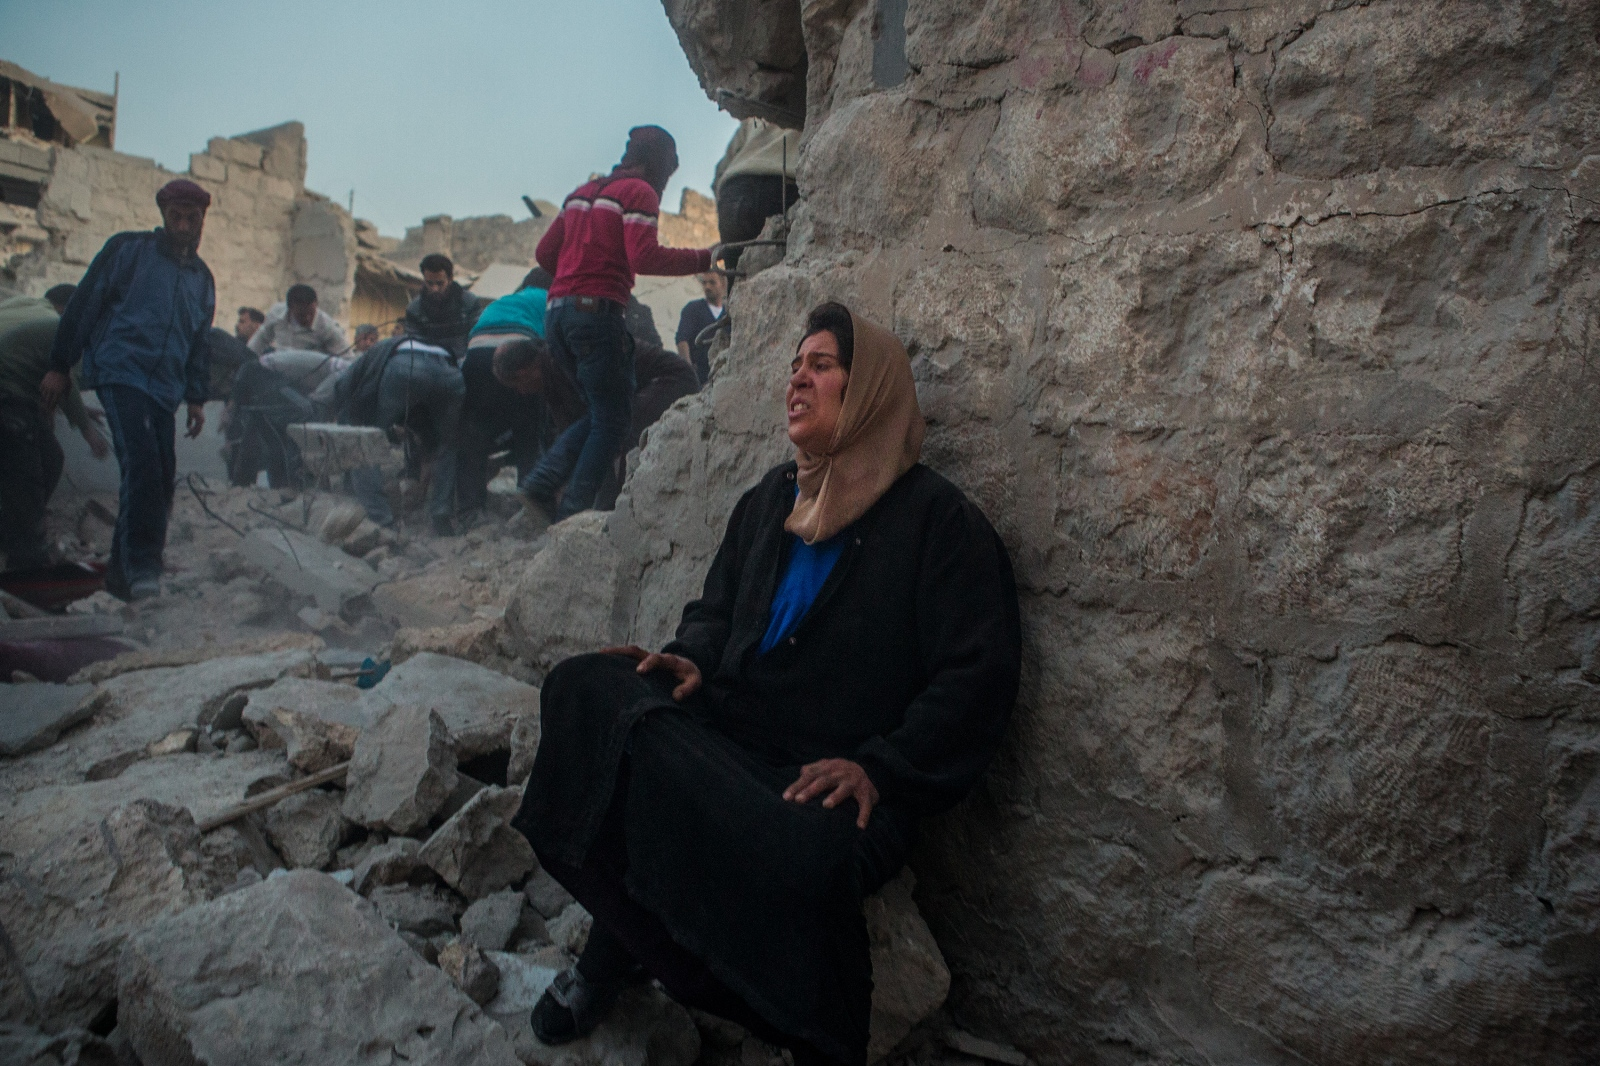 A woman cries in despair amidst the rubble of her neighborhood moments after an aerial bombardment released four to five parachute bombs in the Karm Homed neighborhood of Aleppo, Syria, on Monday, March 18, 2013. Approximately 26 people were killed and over 60 were injured.